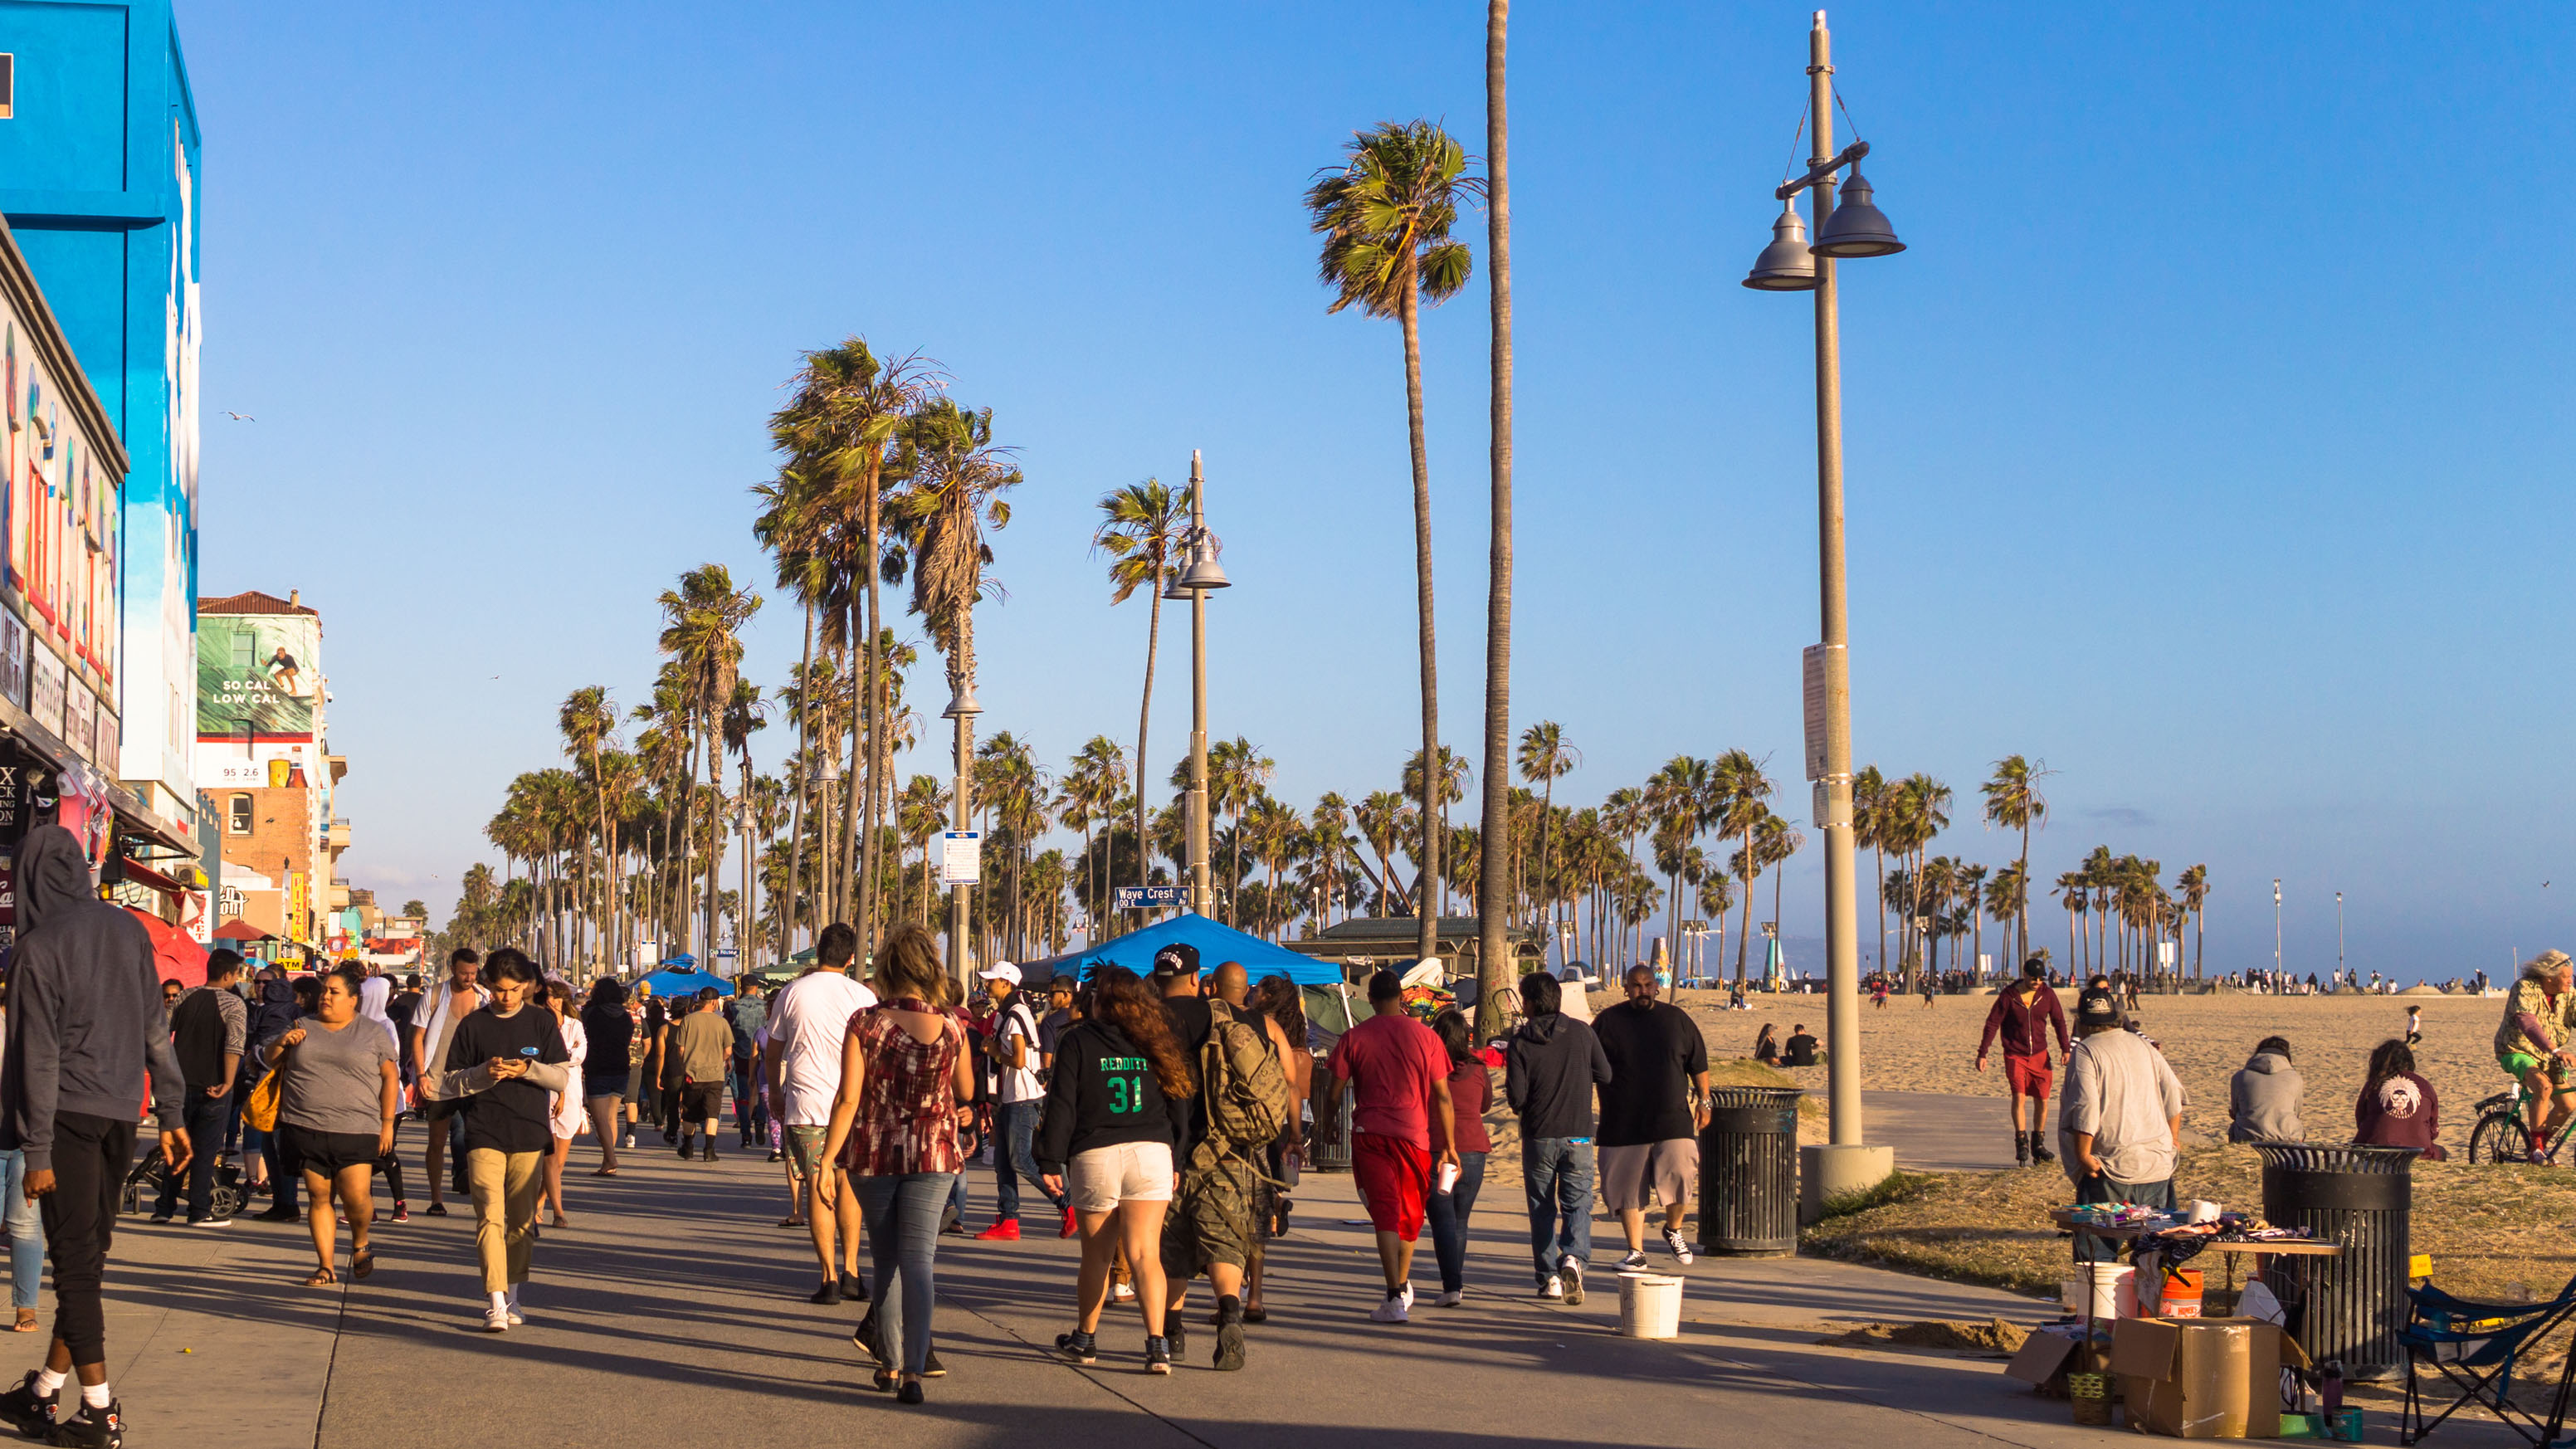 Westlake Legal Group venice-beach-top-of-page Los Angeles County to increase fees for beachgoers fox-news/us/us-regions/west/california fox-news/travel/vacation-destinations/los-angeles fox-news/travel/general/beach fox news fnc/us fnc e31de210-c924-5dbb-a665-9ba27765bff0 Danielle Wallace article